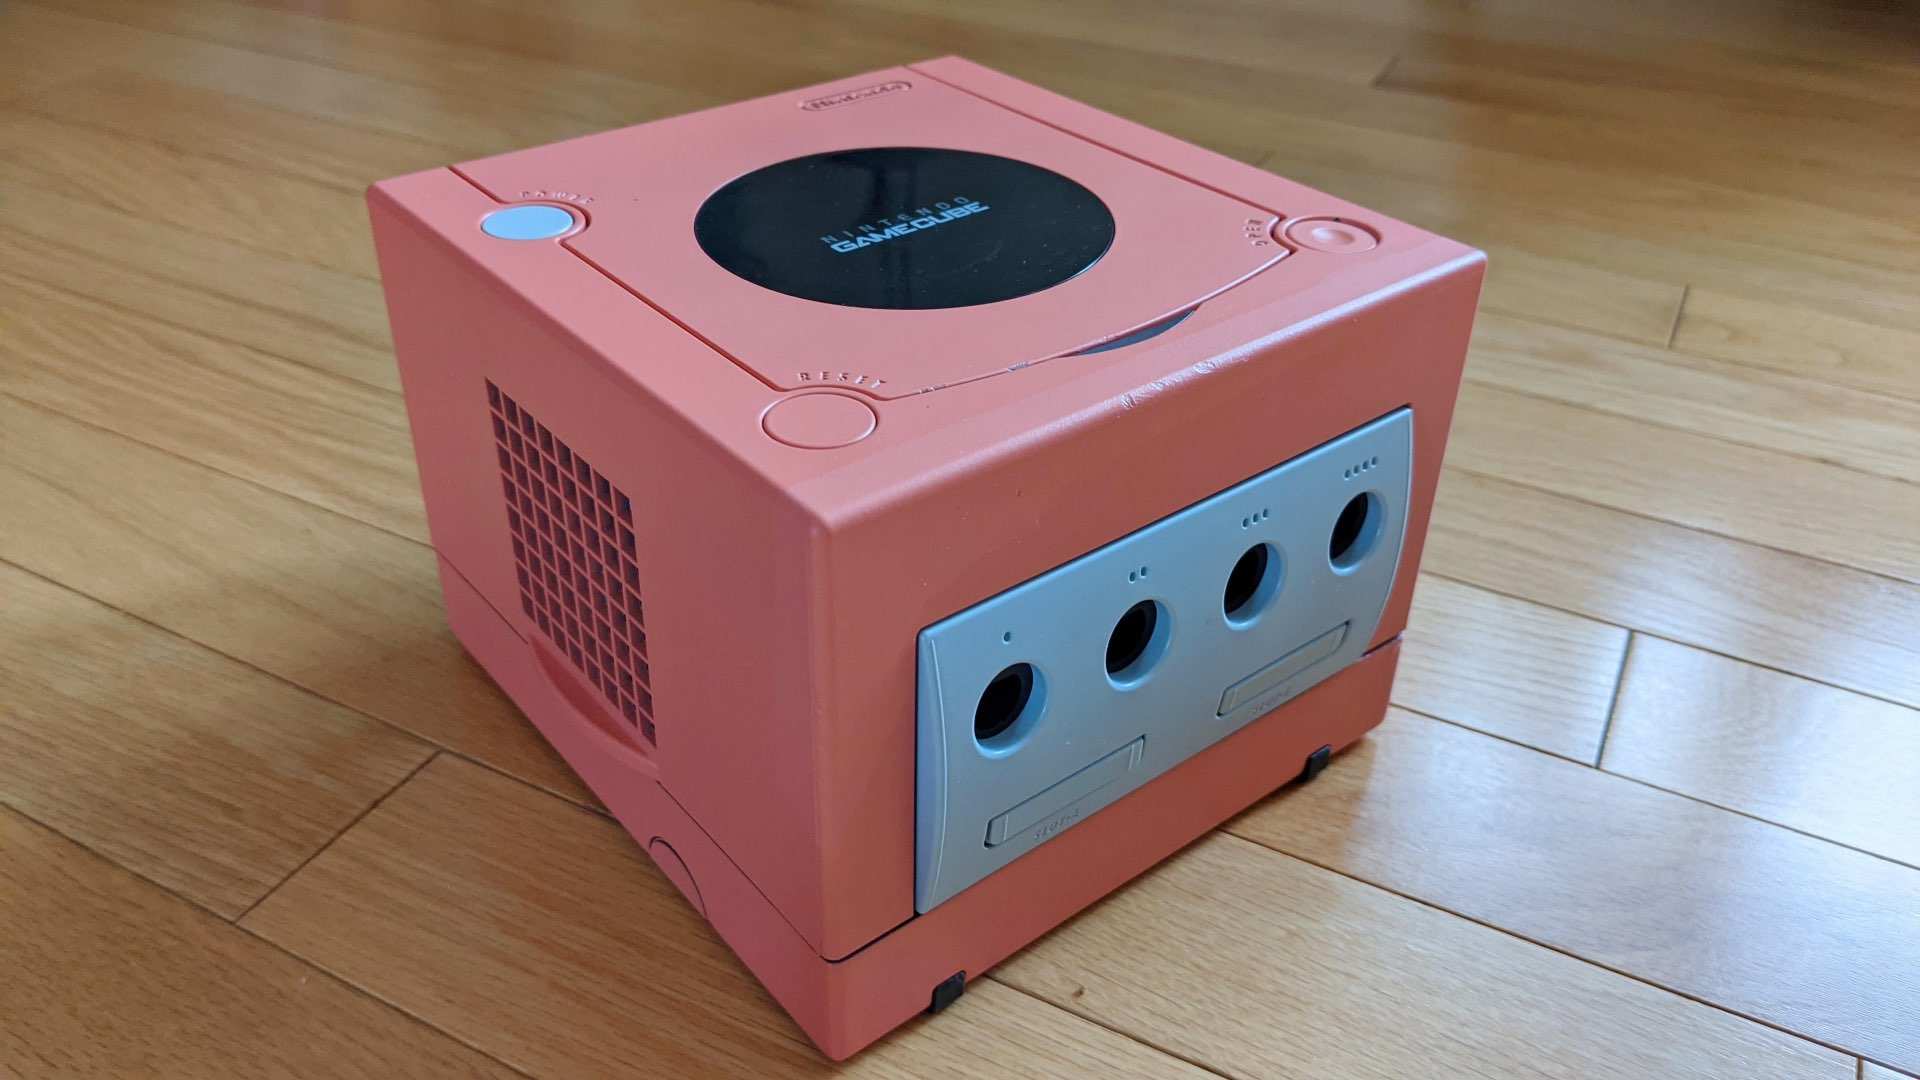 Check out this Nvidia GeForce-powered PC inside of an old Gamecube